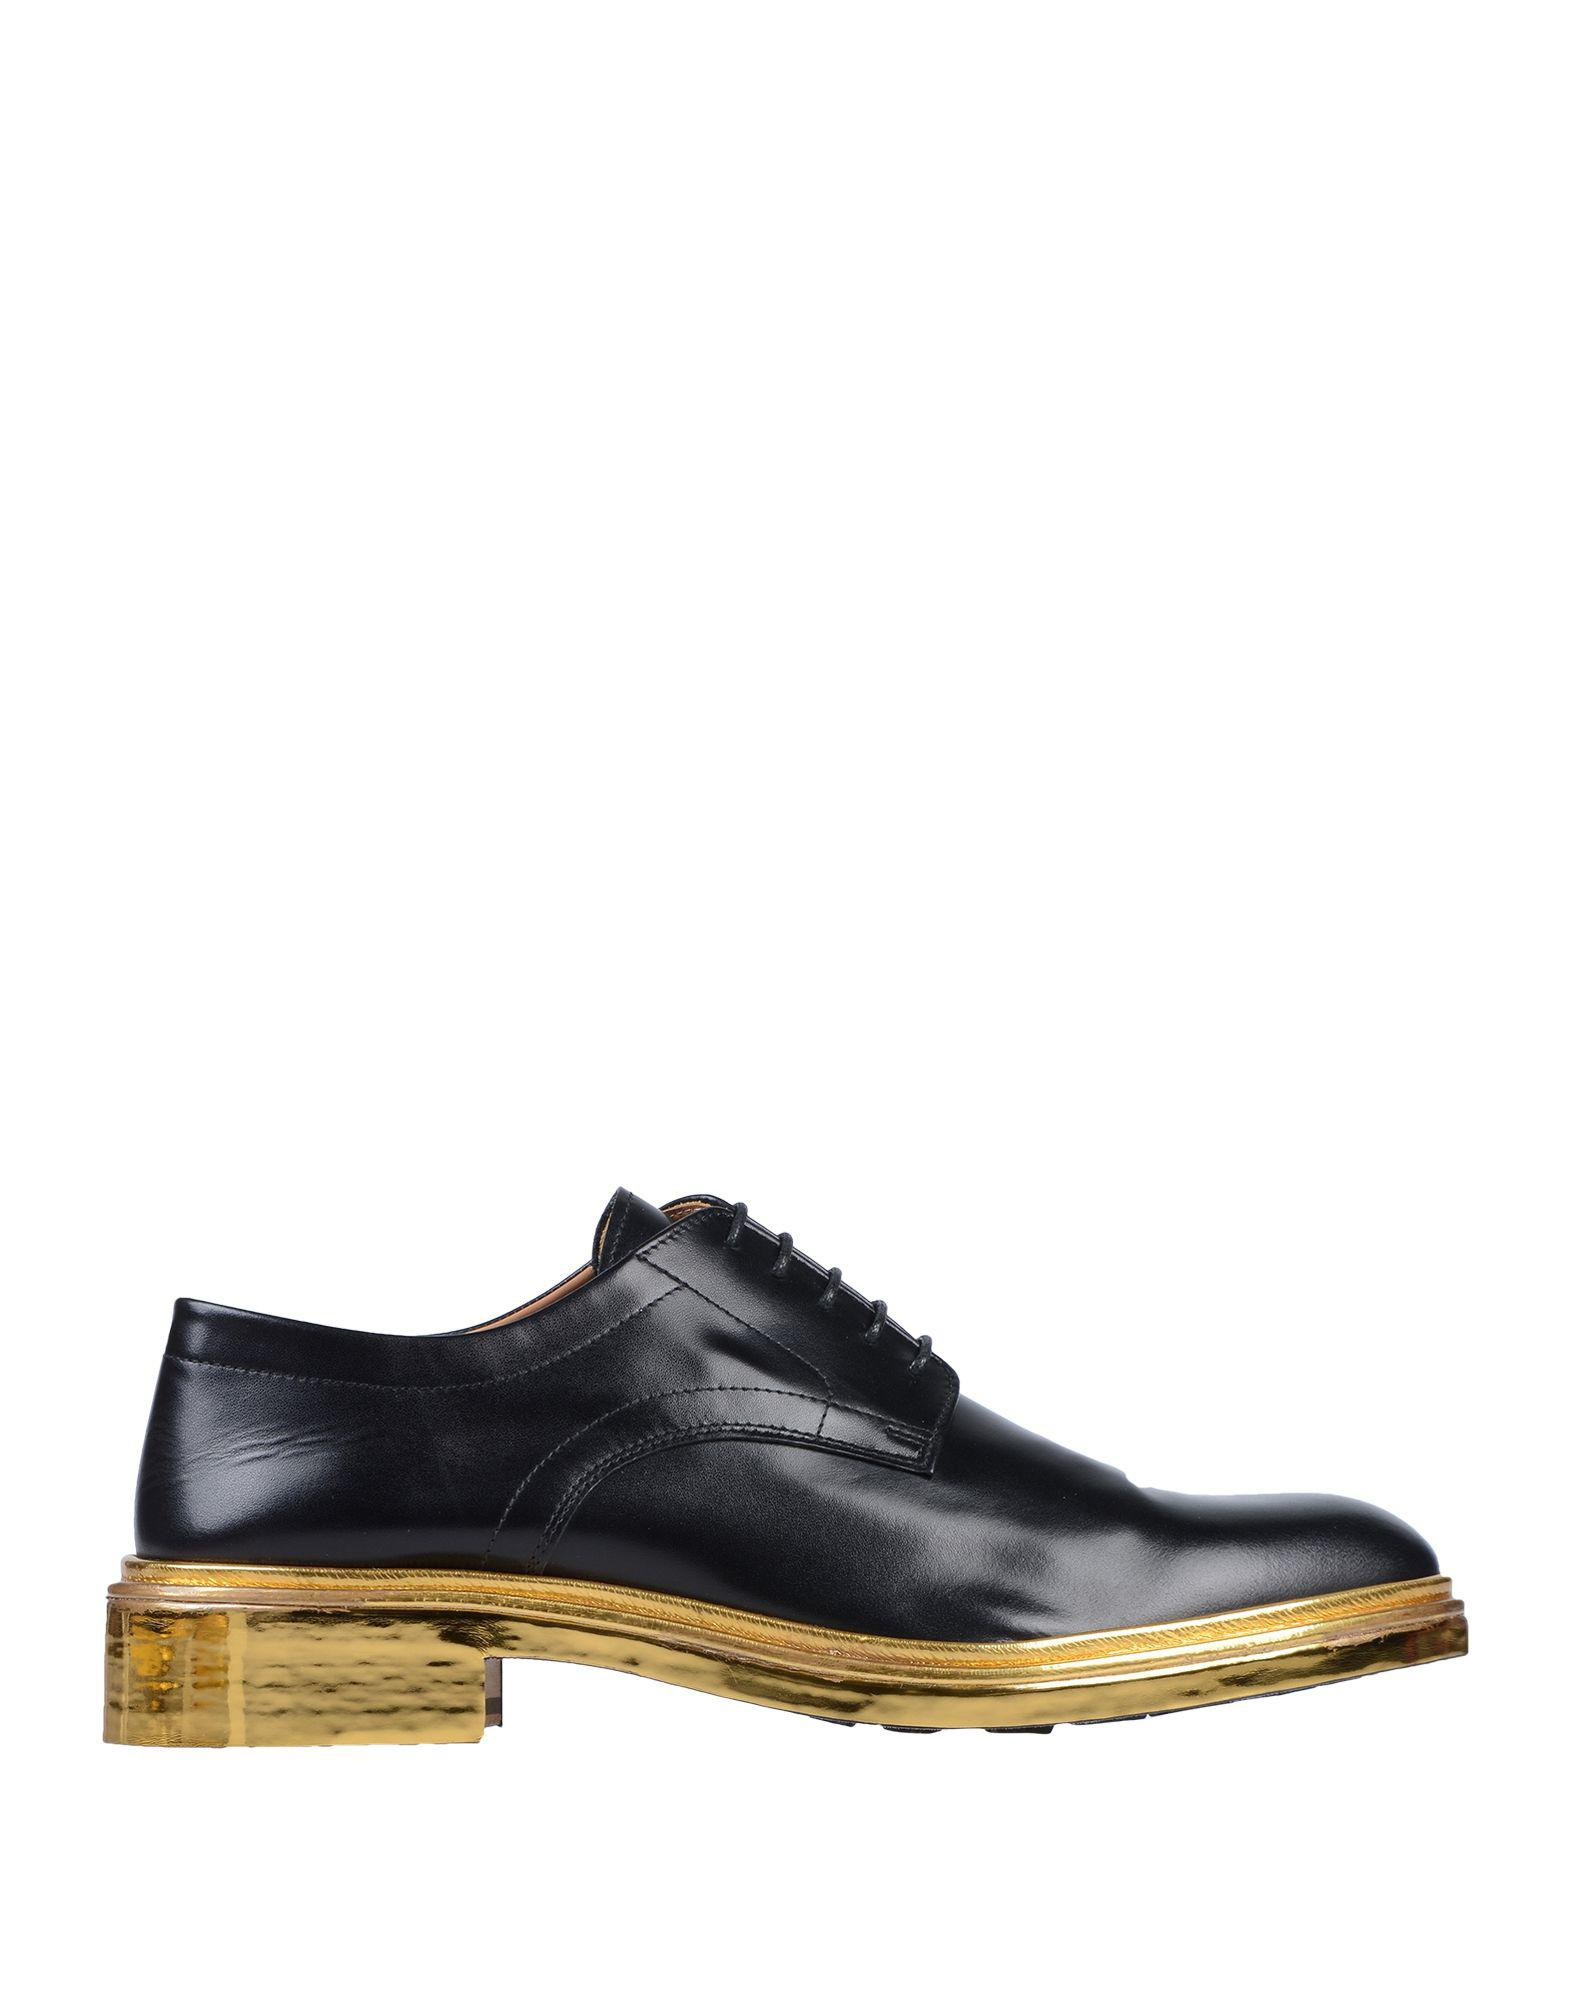 c67a7981f6a Lyst - Maison Margiela Lace-up Shoe in Black for Men